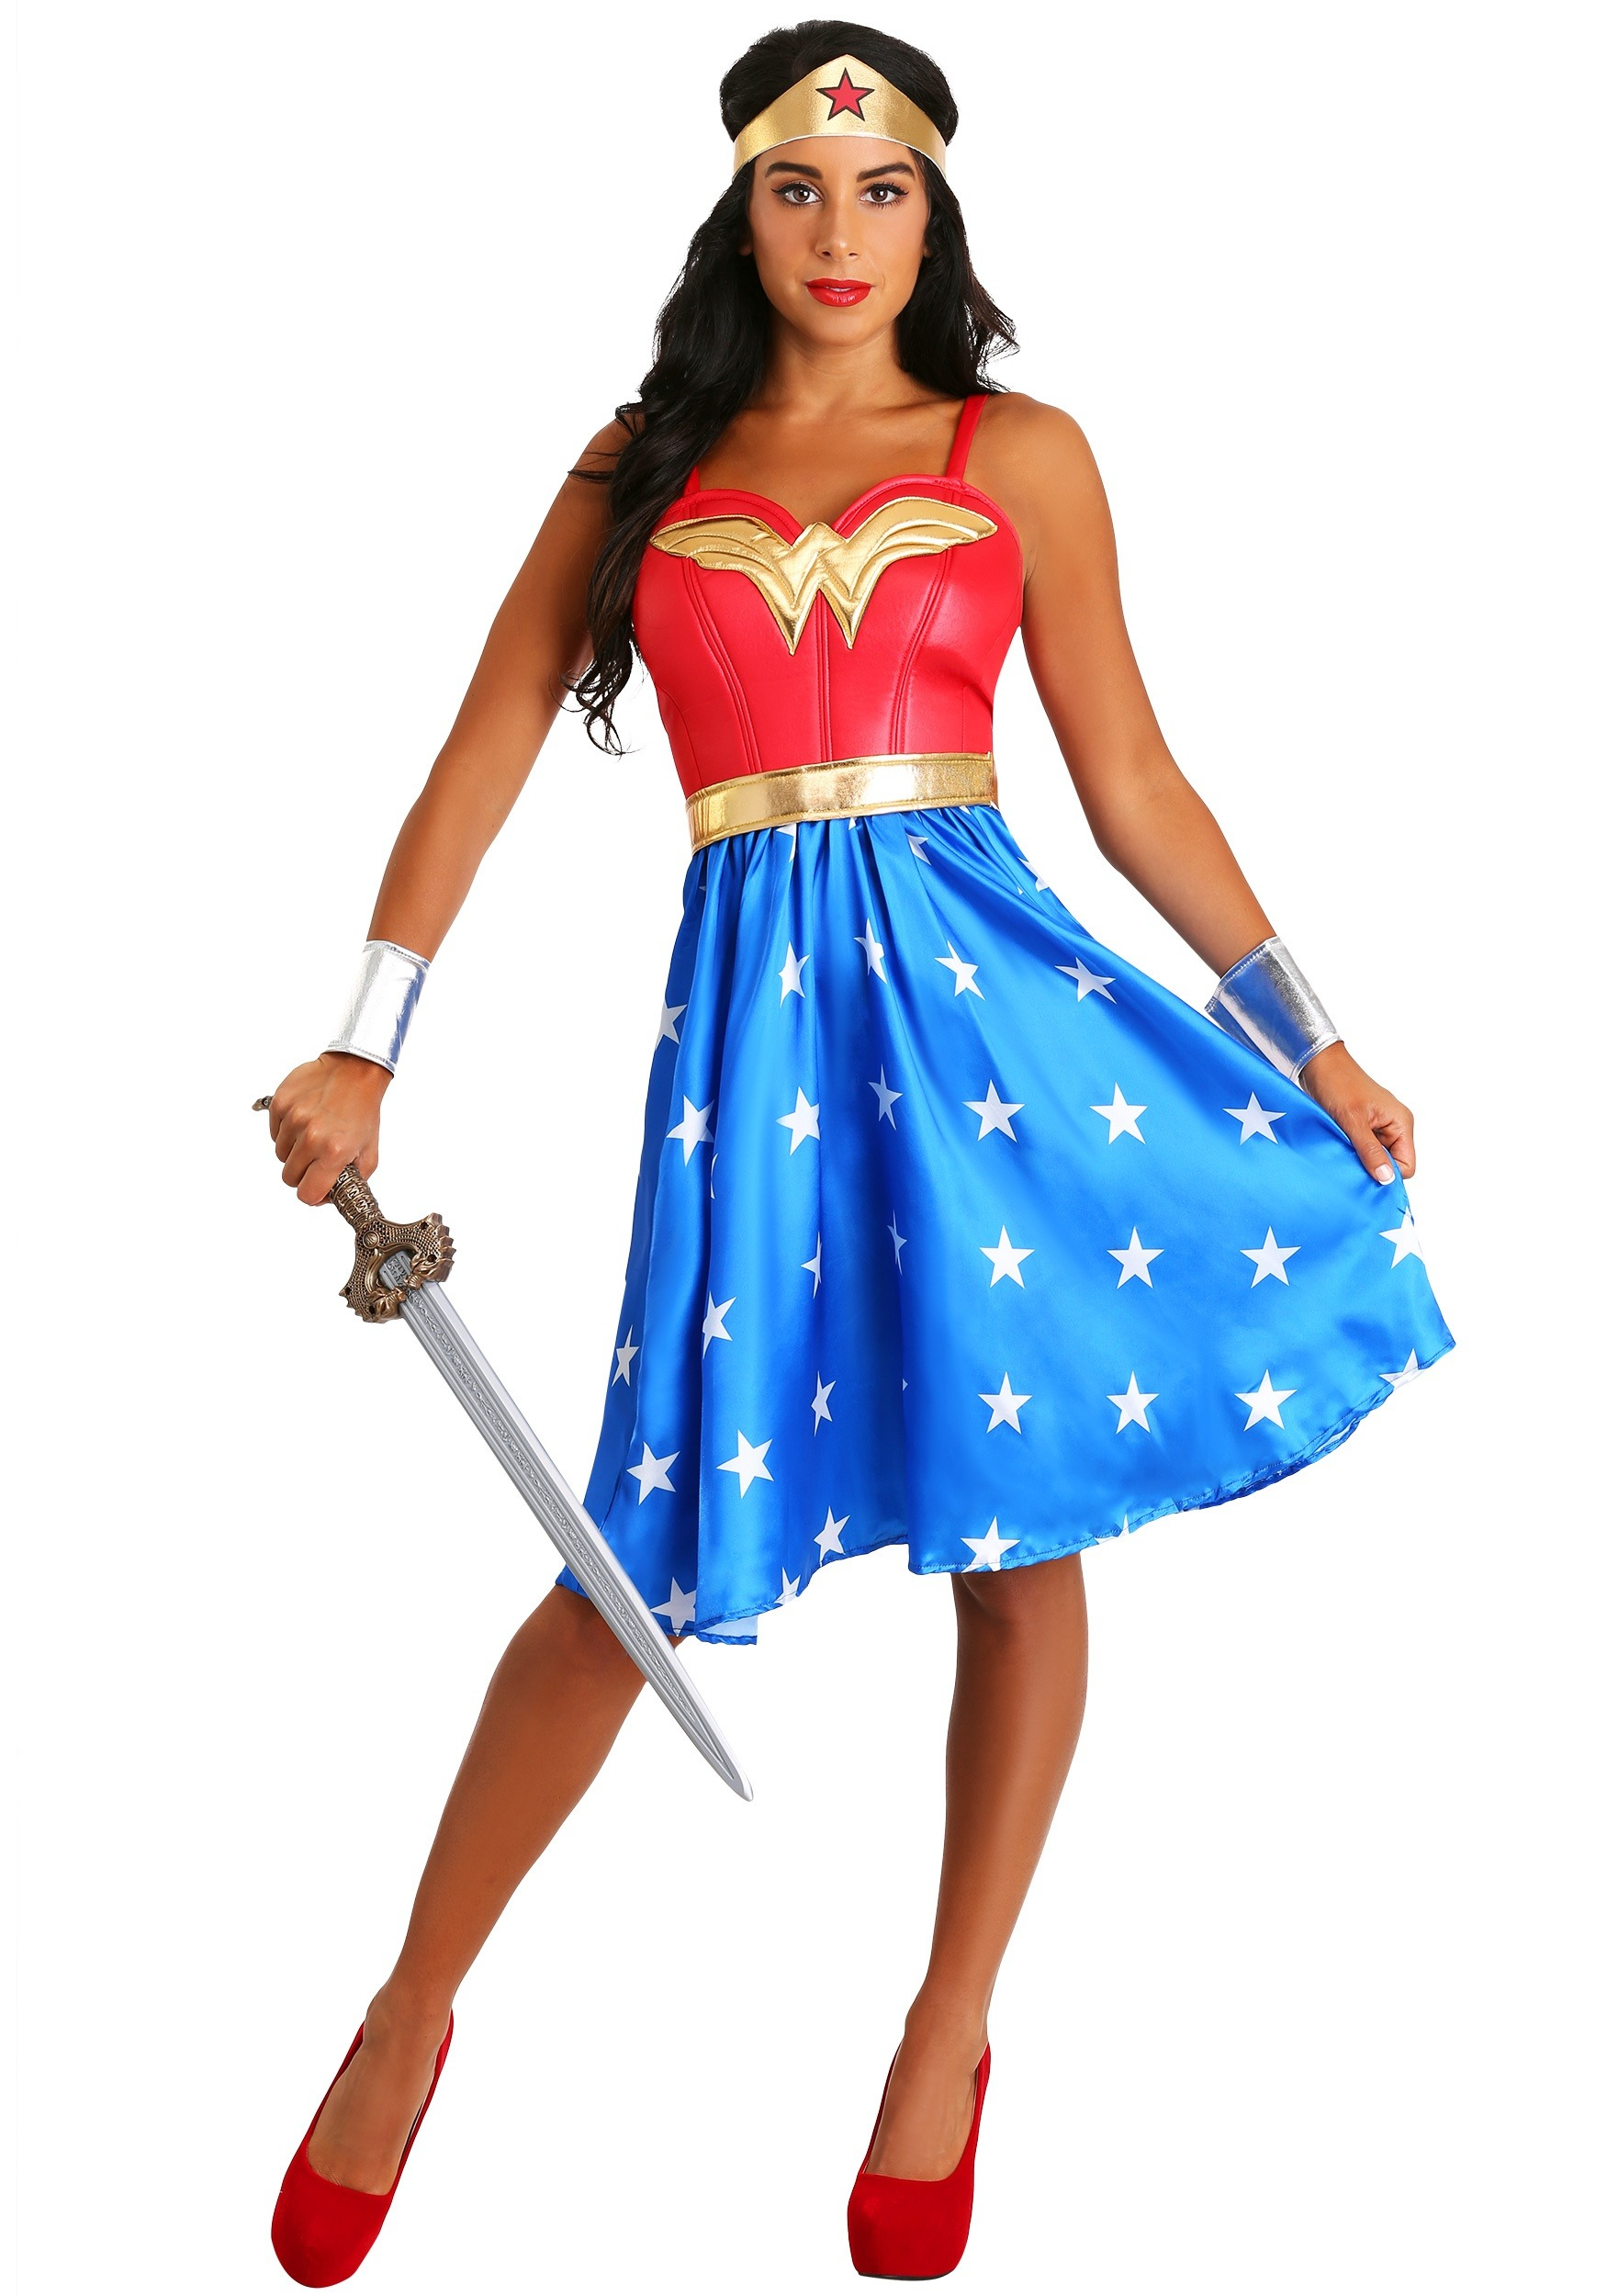 Plus Size Women&-39-s Costumes - Plus Size Halloween Costumes for Women